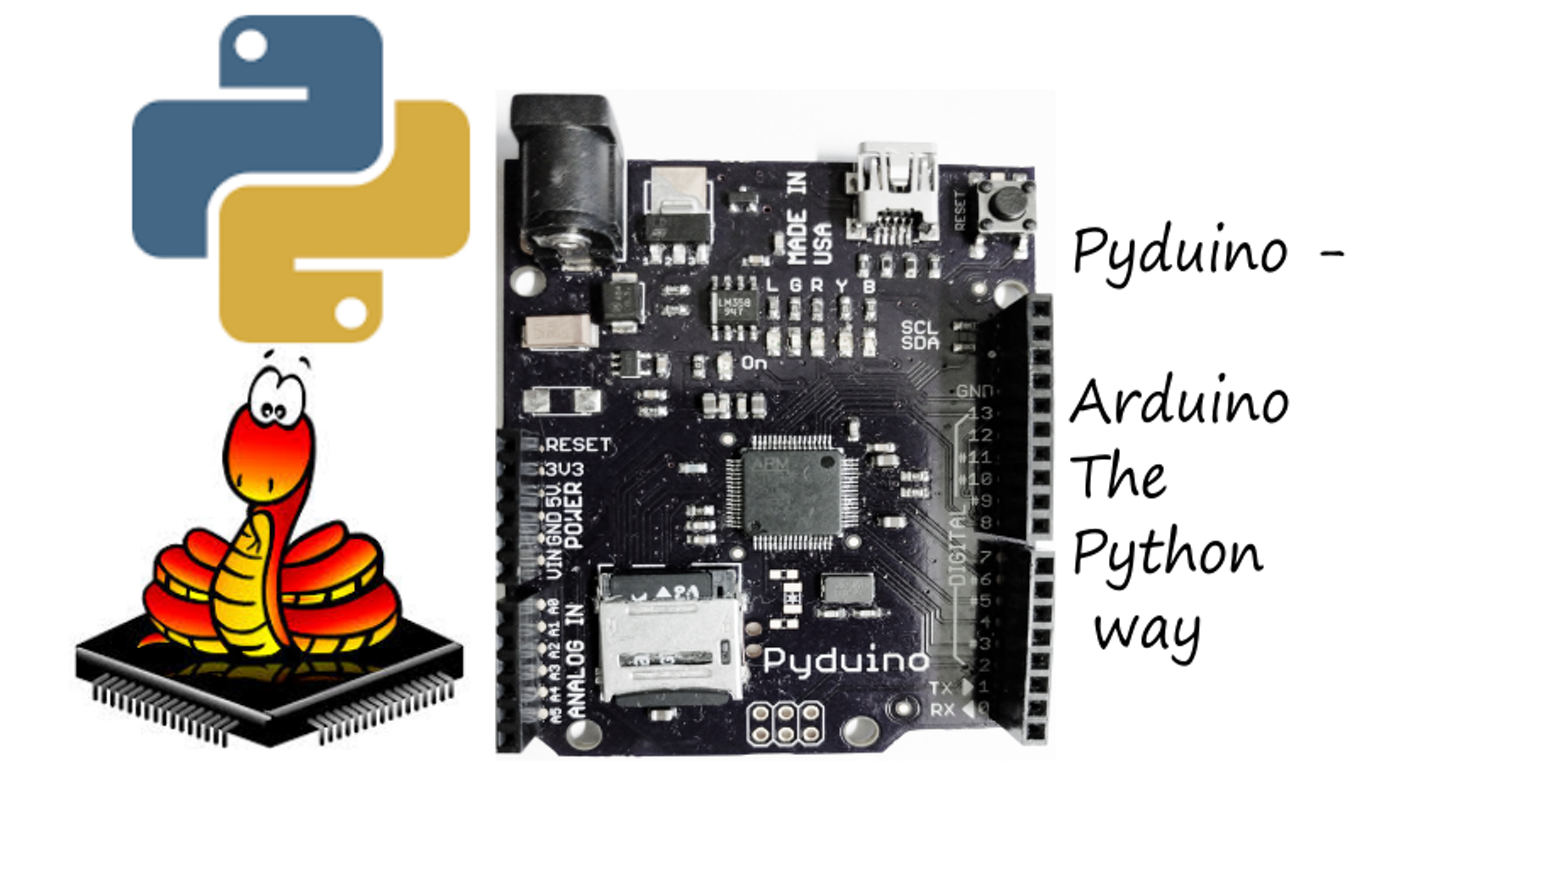 Pyduino - Arduino the python way by Nitin — Kickstarter